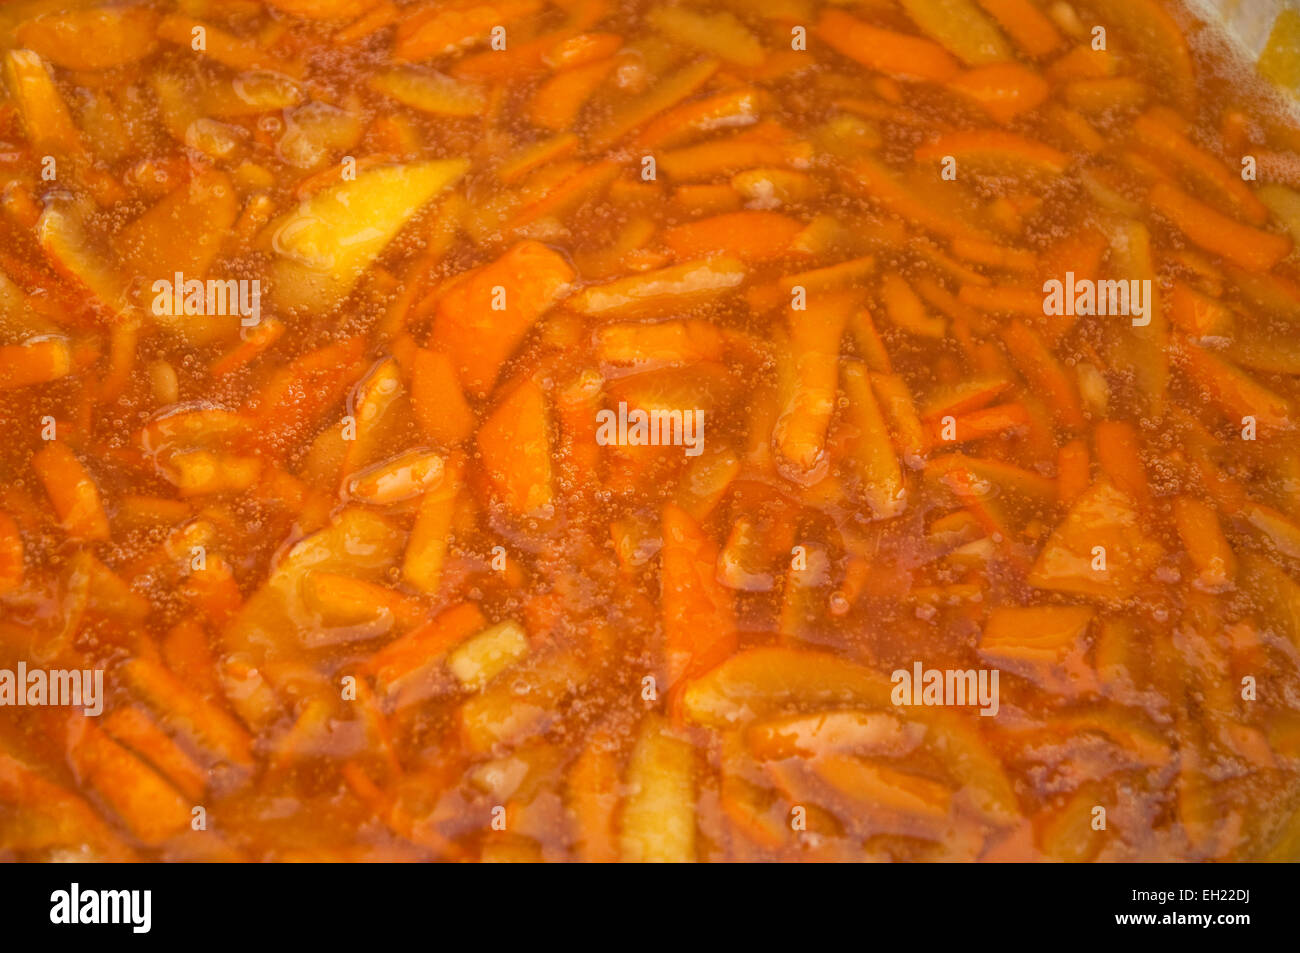 Making marmalade - coarsely chopped Seville oranges and lemon peel  gently simmering within a preserving pan. - Stock Image